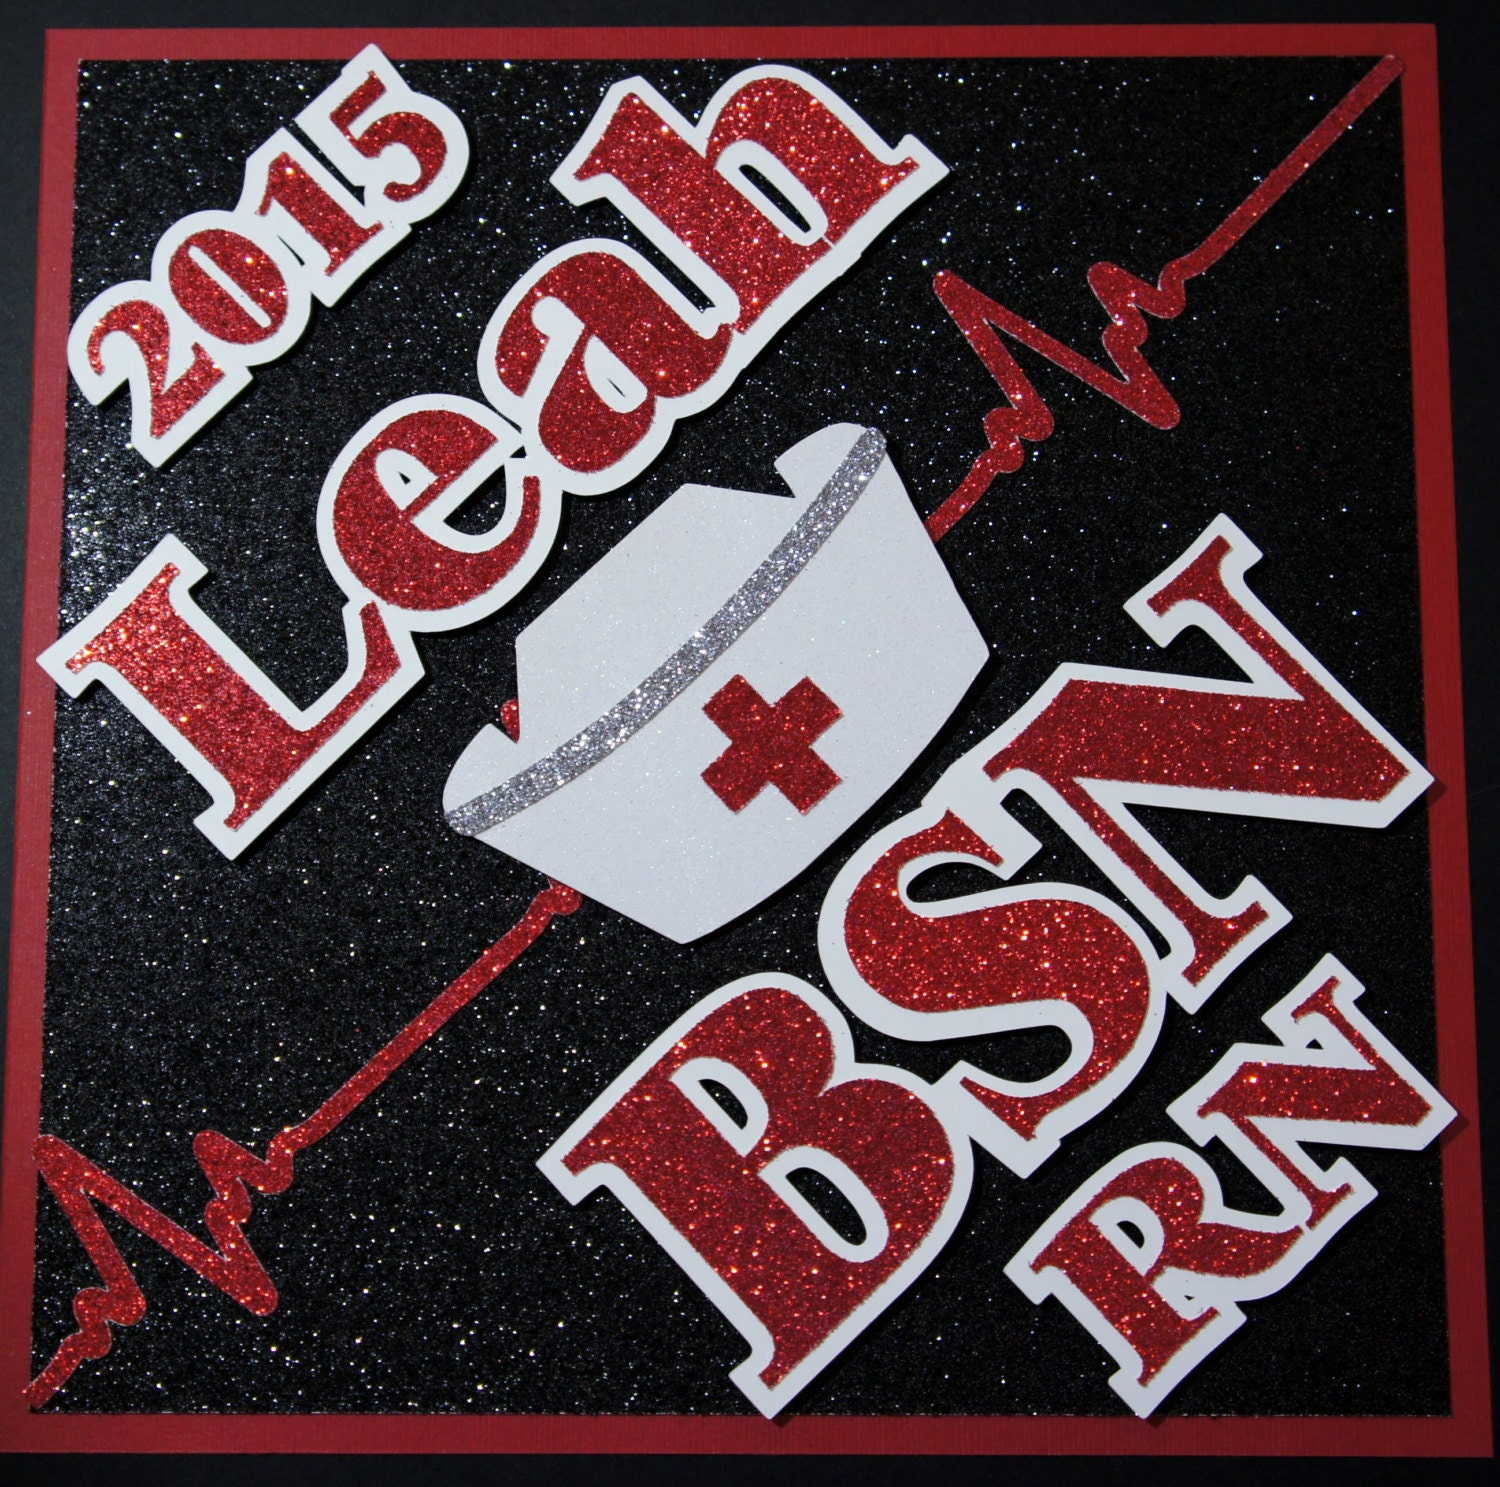 BSN RN Custom Nurse Graduation Cap Decoration Topper